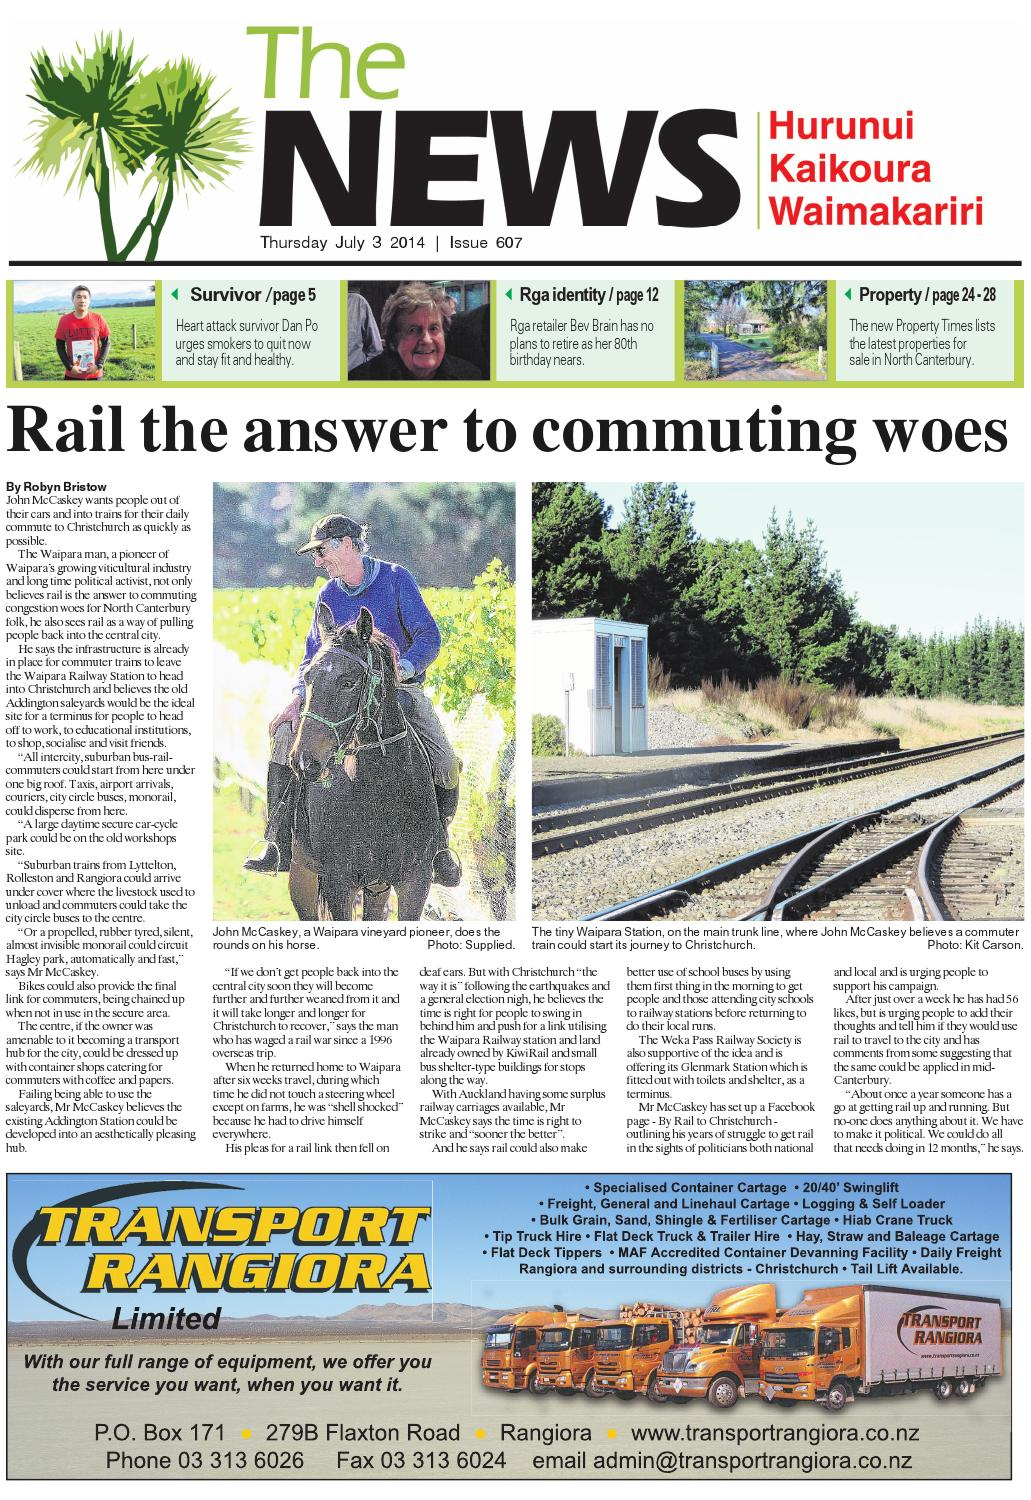 The News North Canterbury 03 07 14 By Local Newspapers Issuu About Trailer Light Isolated Power Supply Converter 5 To 4 Wire Pm32